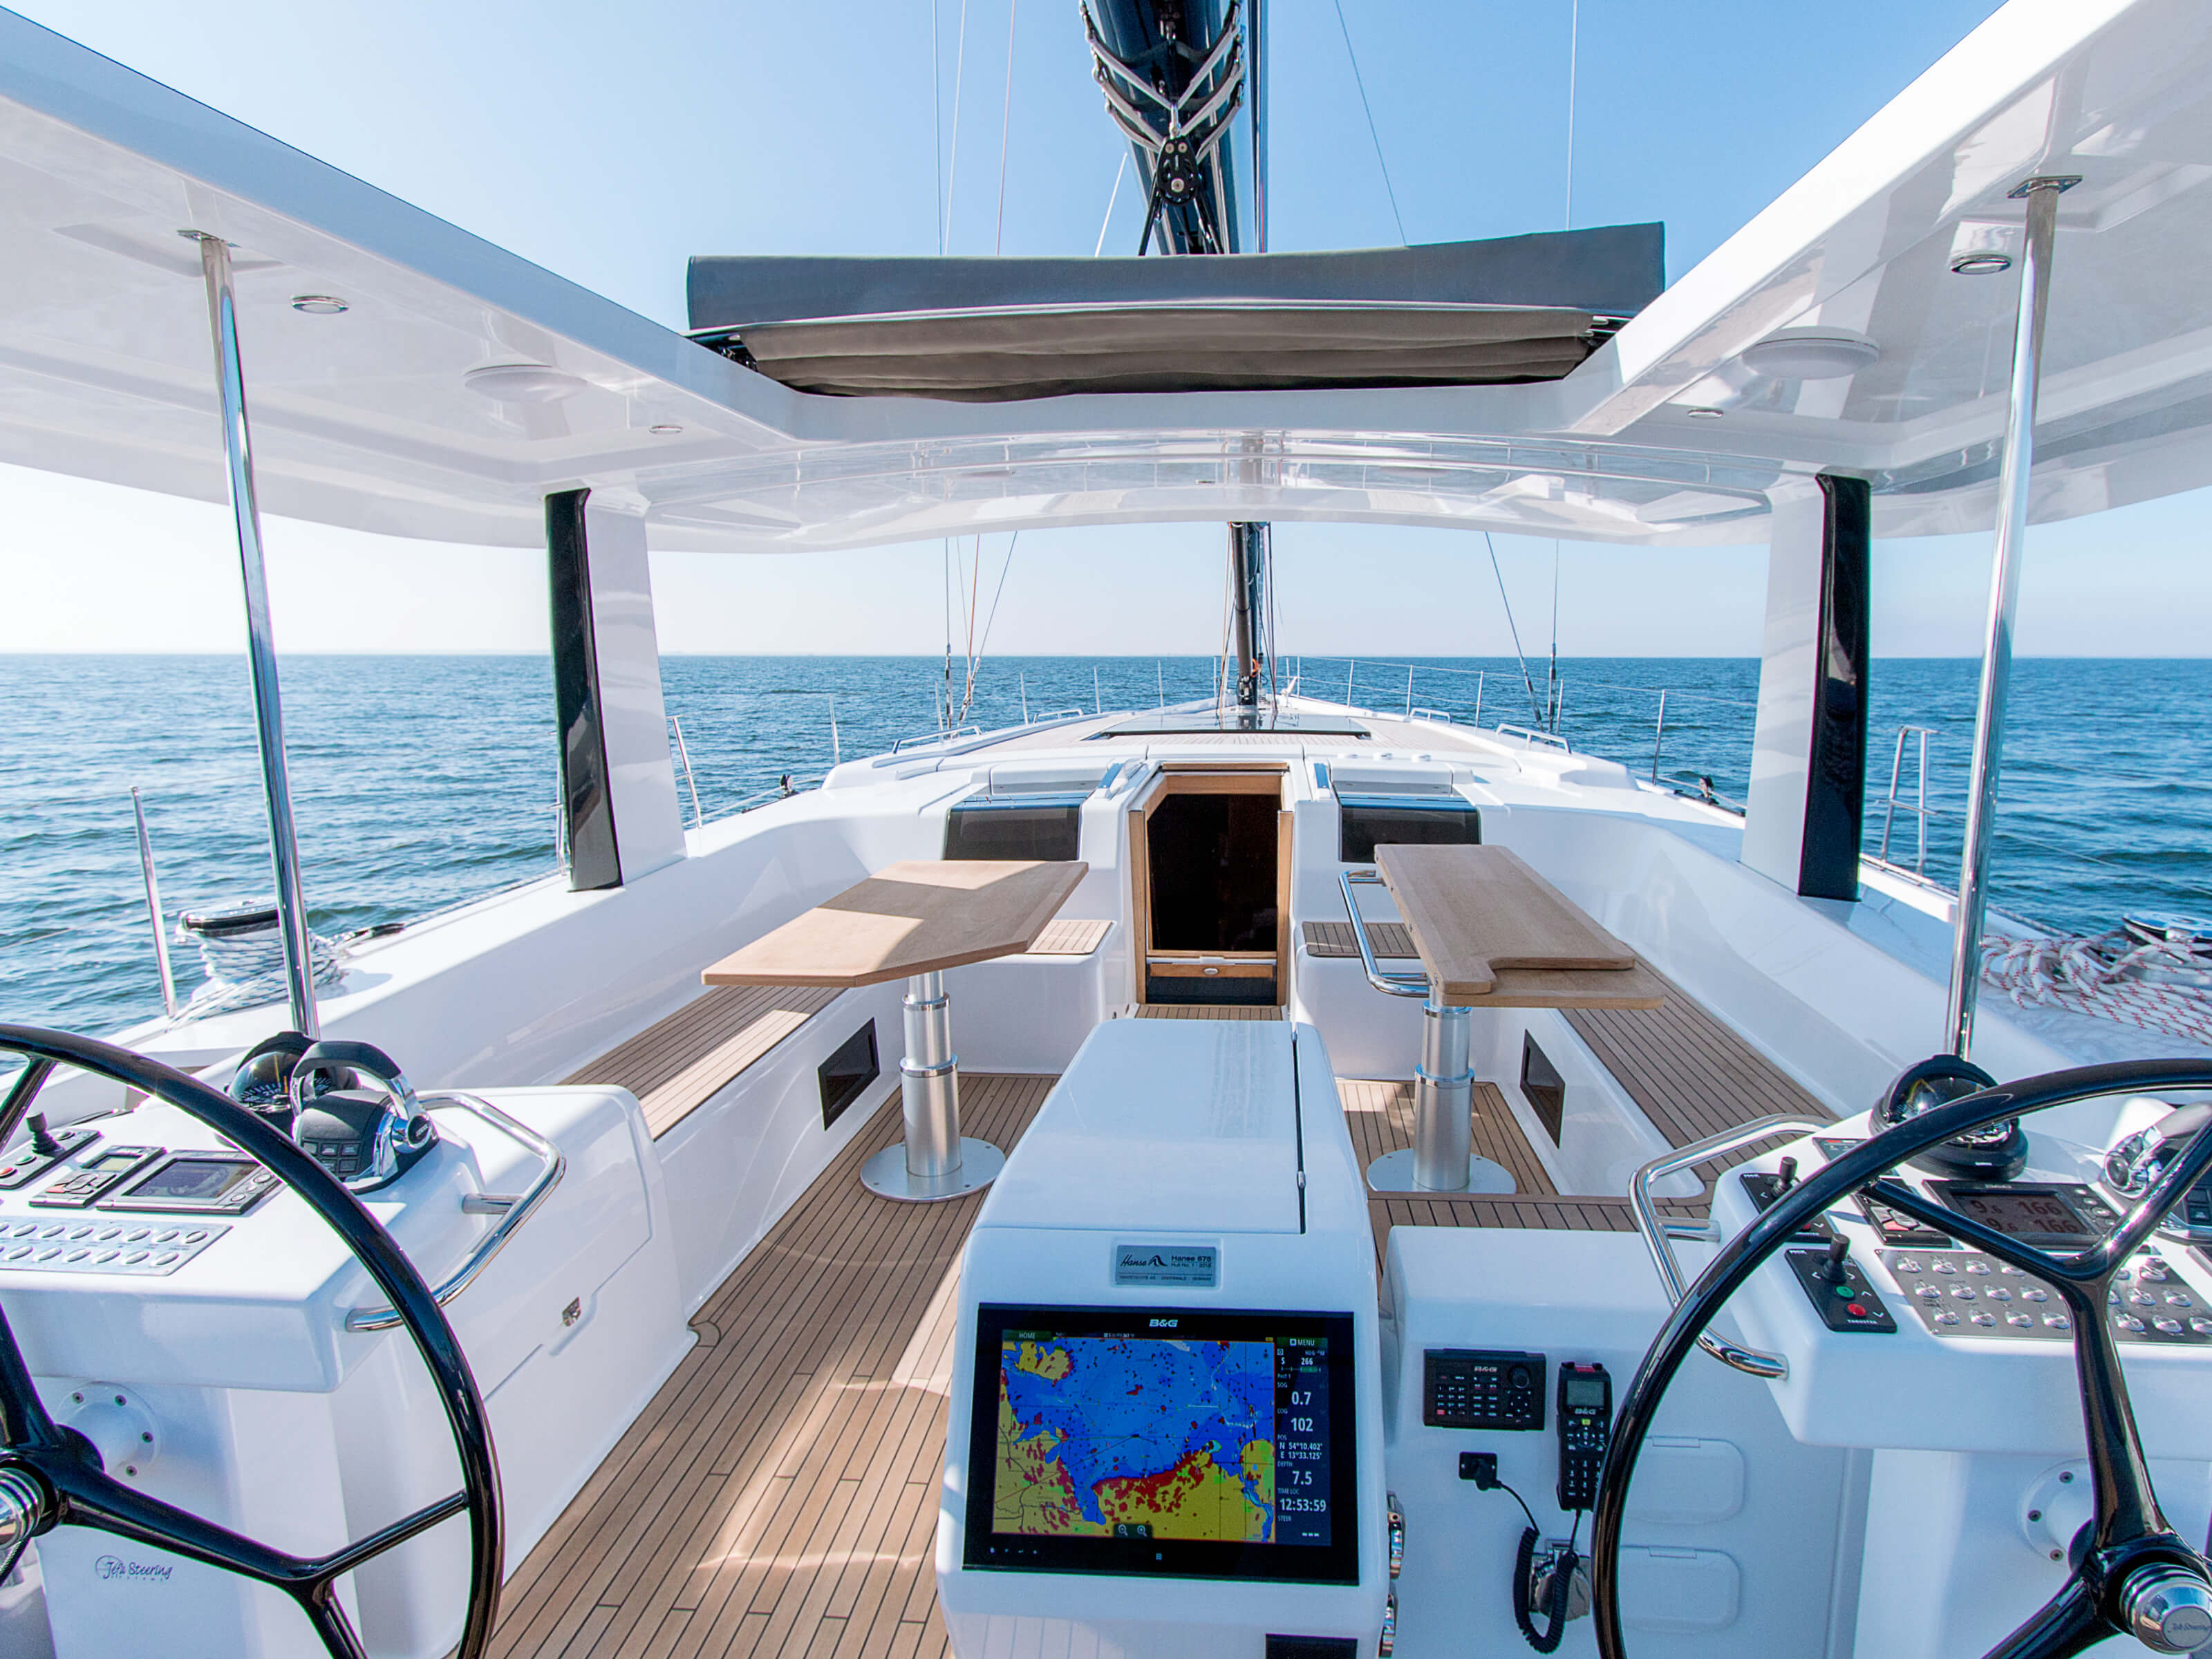 Hanse 675 | cockpit, companion way, teak deck, cockpit table, double steering wheel, multi-function display | Hanse